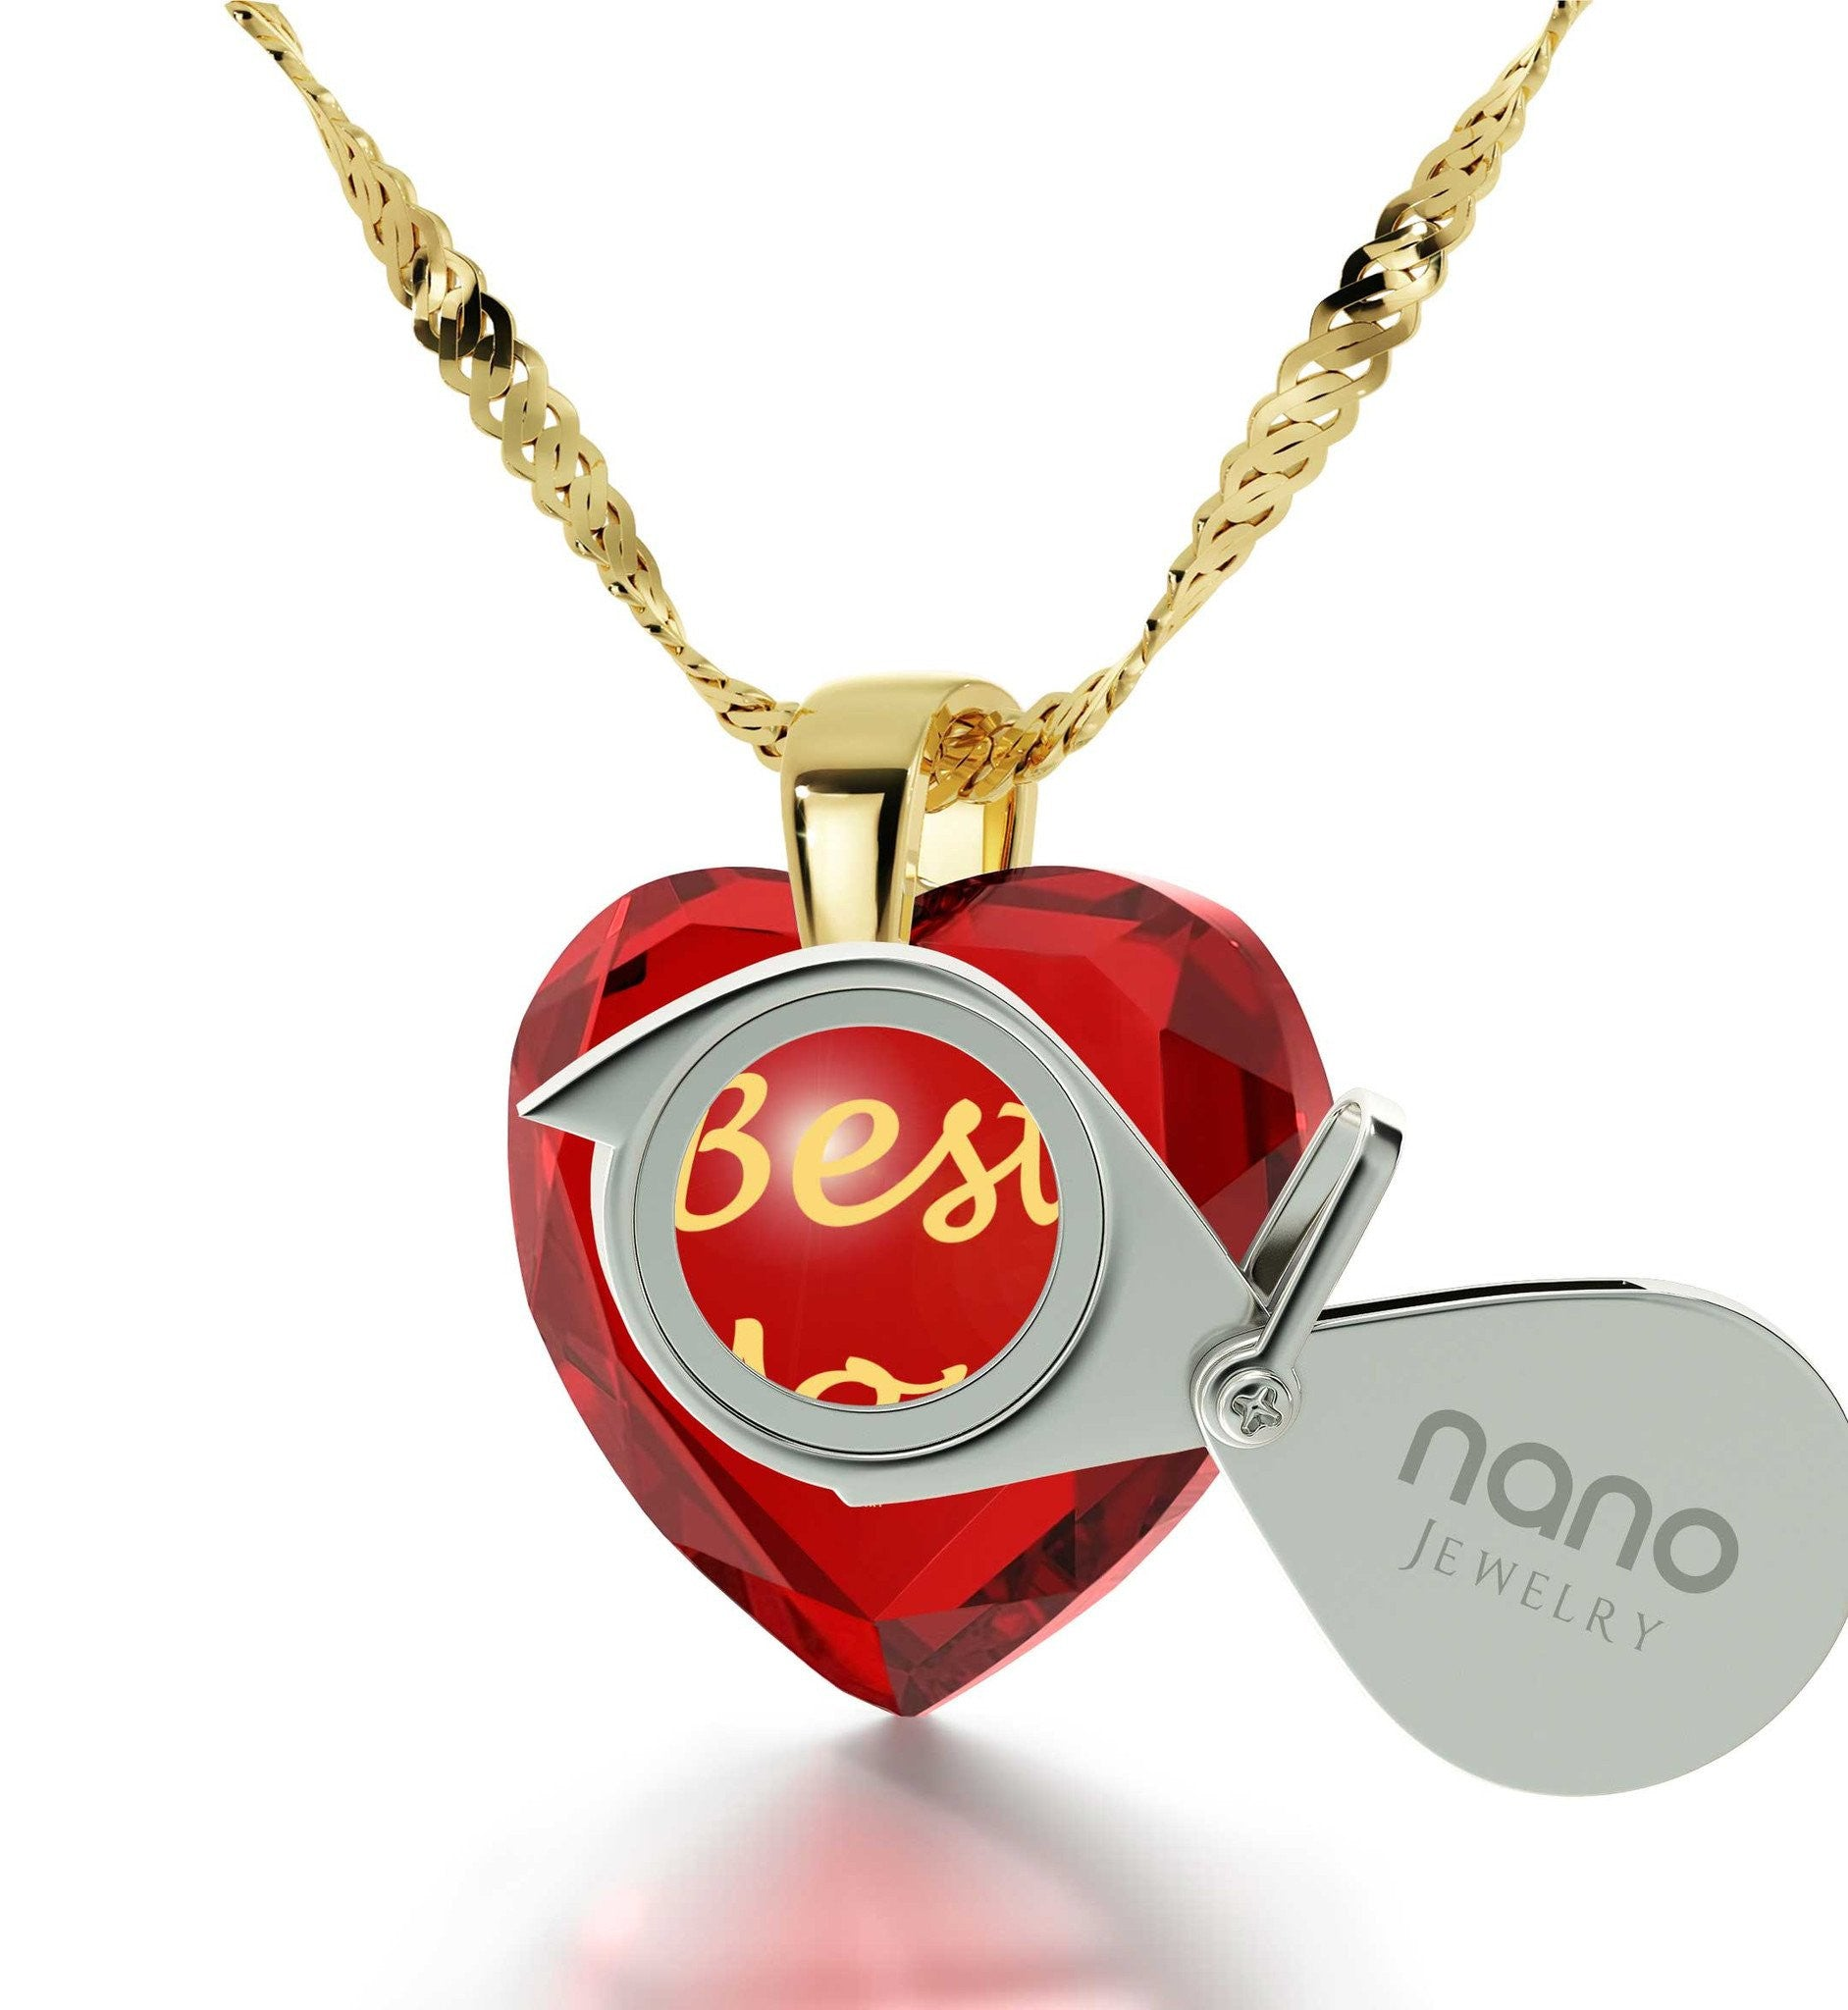 Great Christmas Gifts for Mom, Gold Filled Red Heart Necklace, Mother Birthday Present